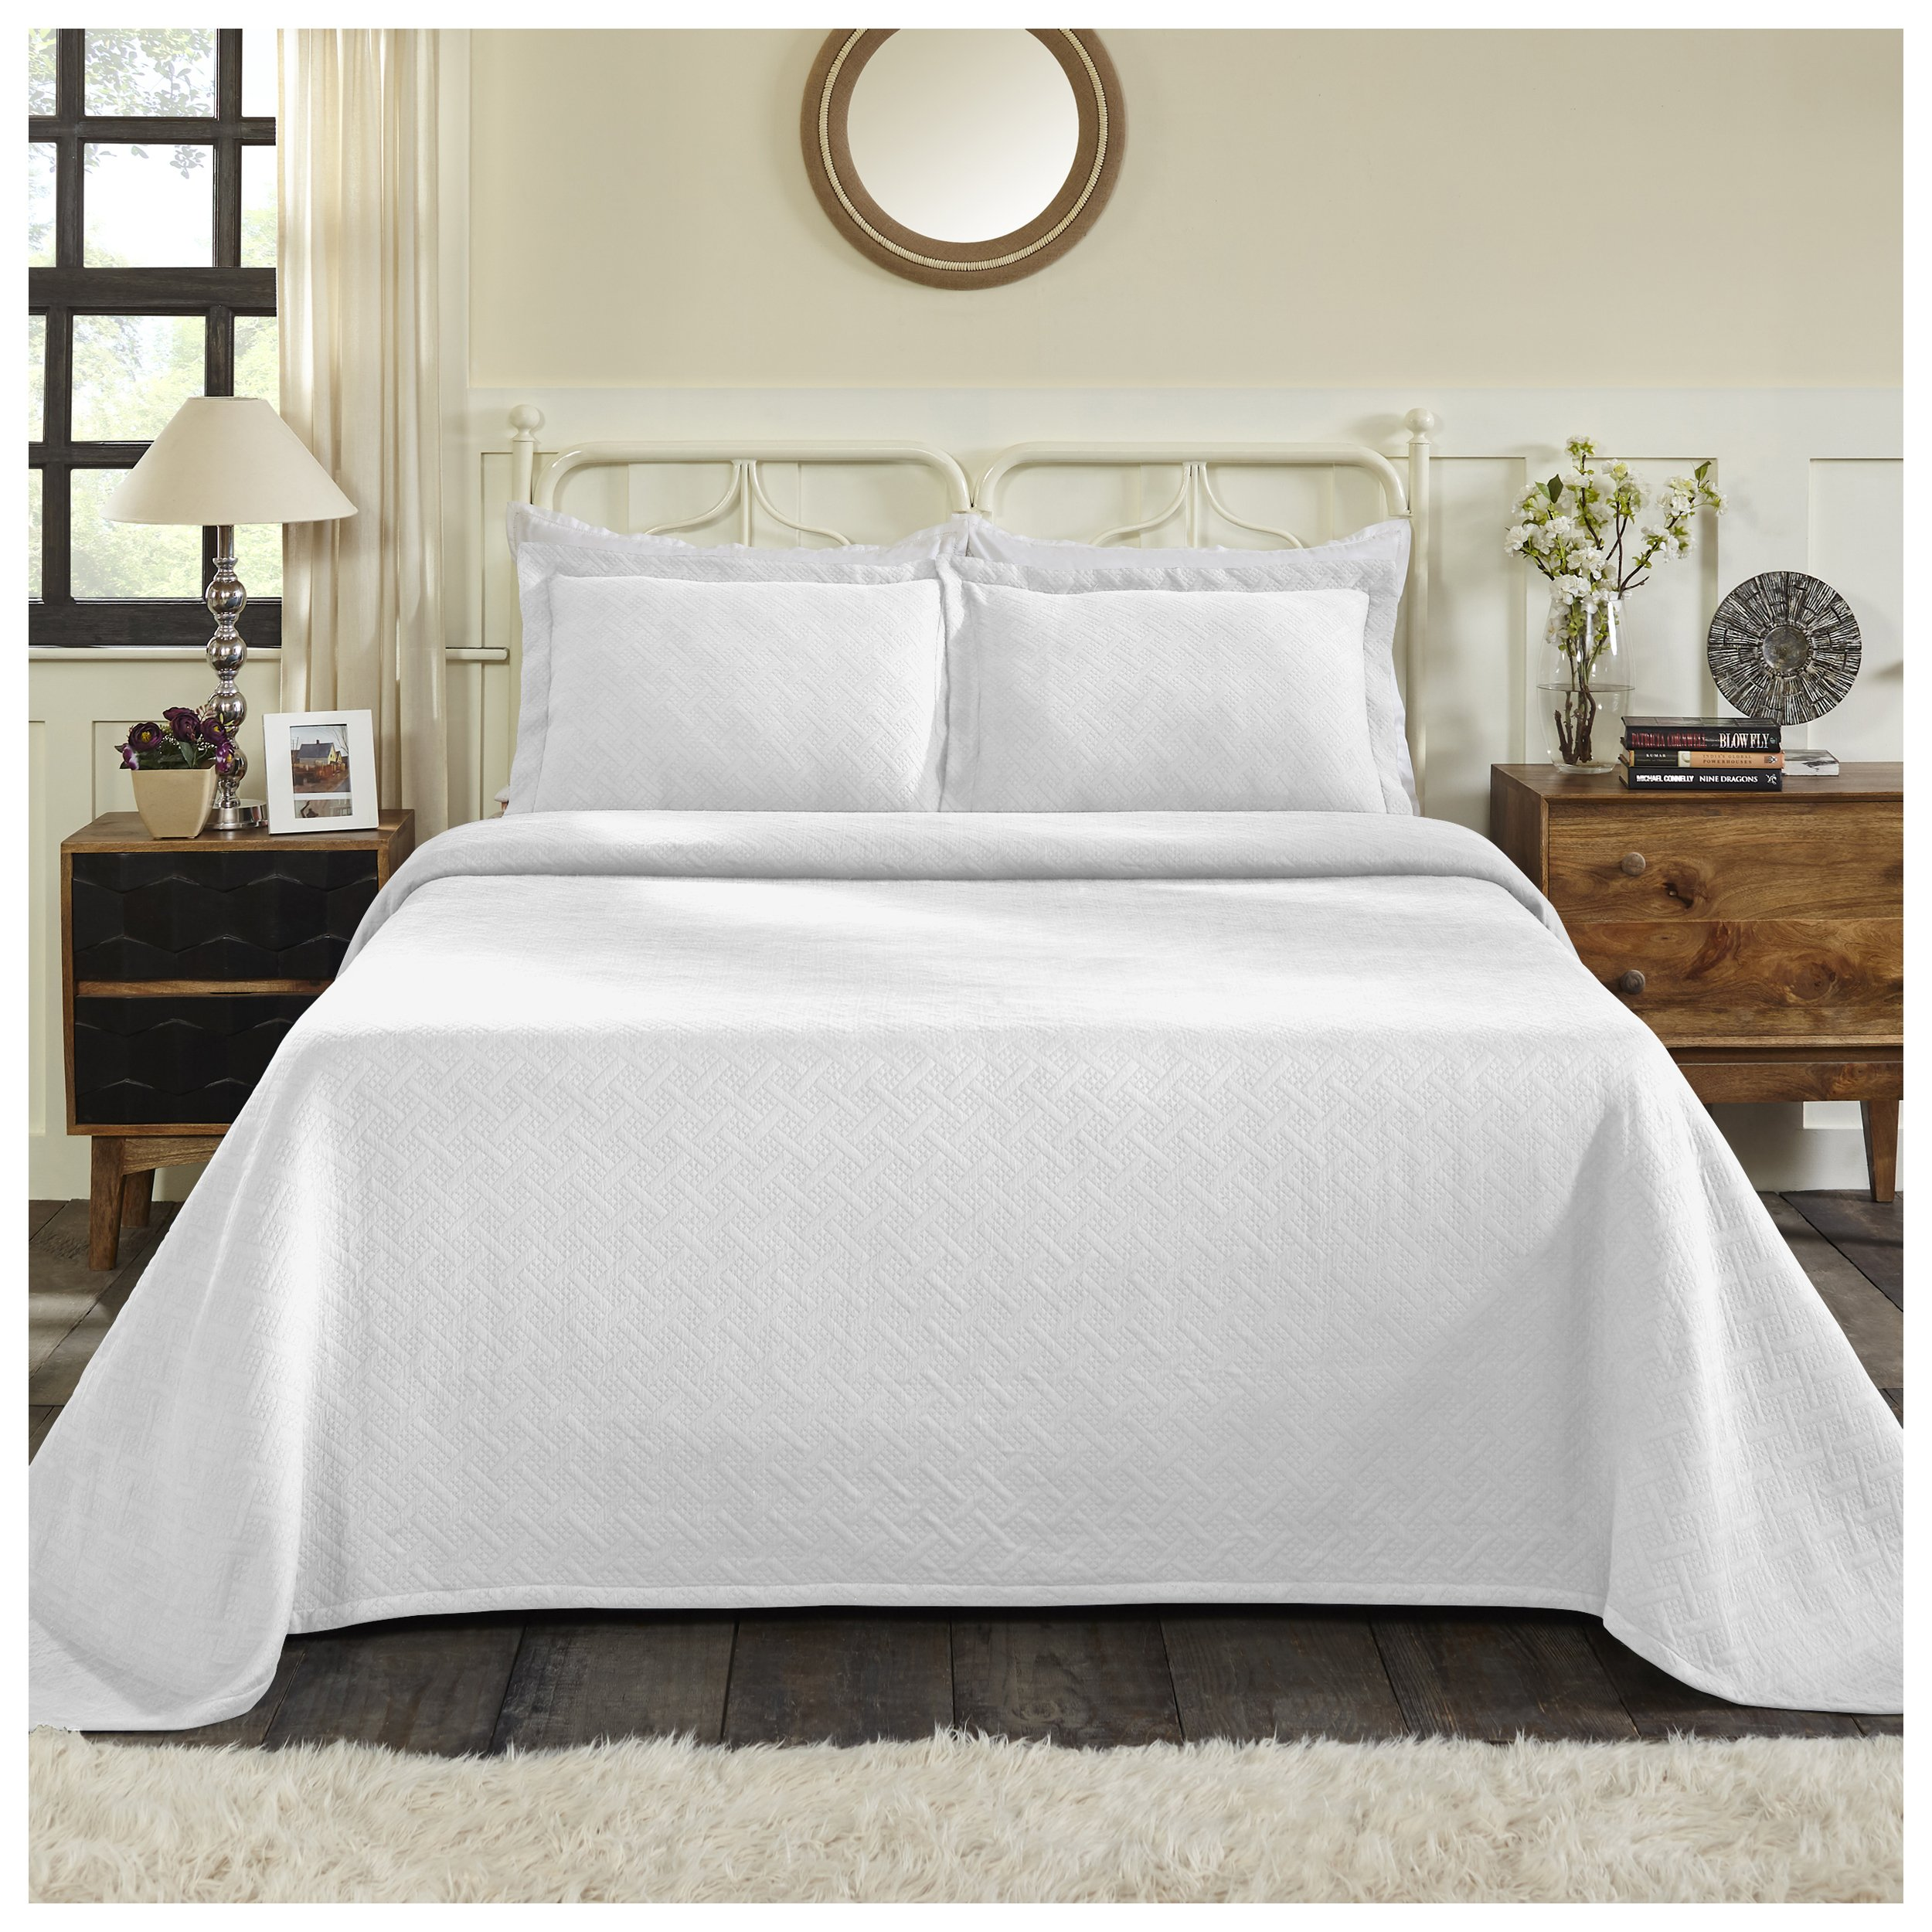 Superior 100% Cotton Basket Weave Bedspread with Shams, All-Season Premium Cotton Matelassé Jacquard Bedding, Quilted-look Geometric Basket Pattern - King, White by Superior